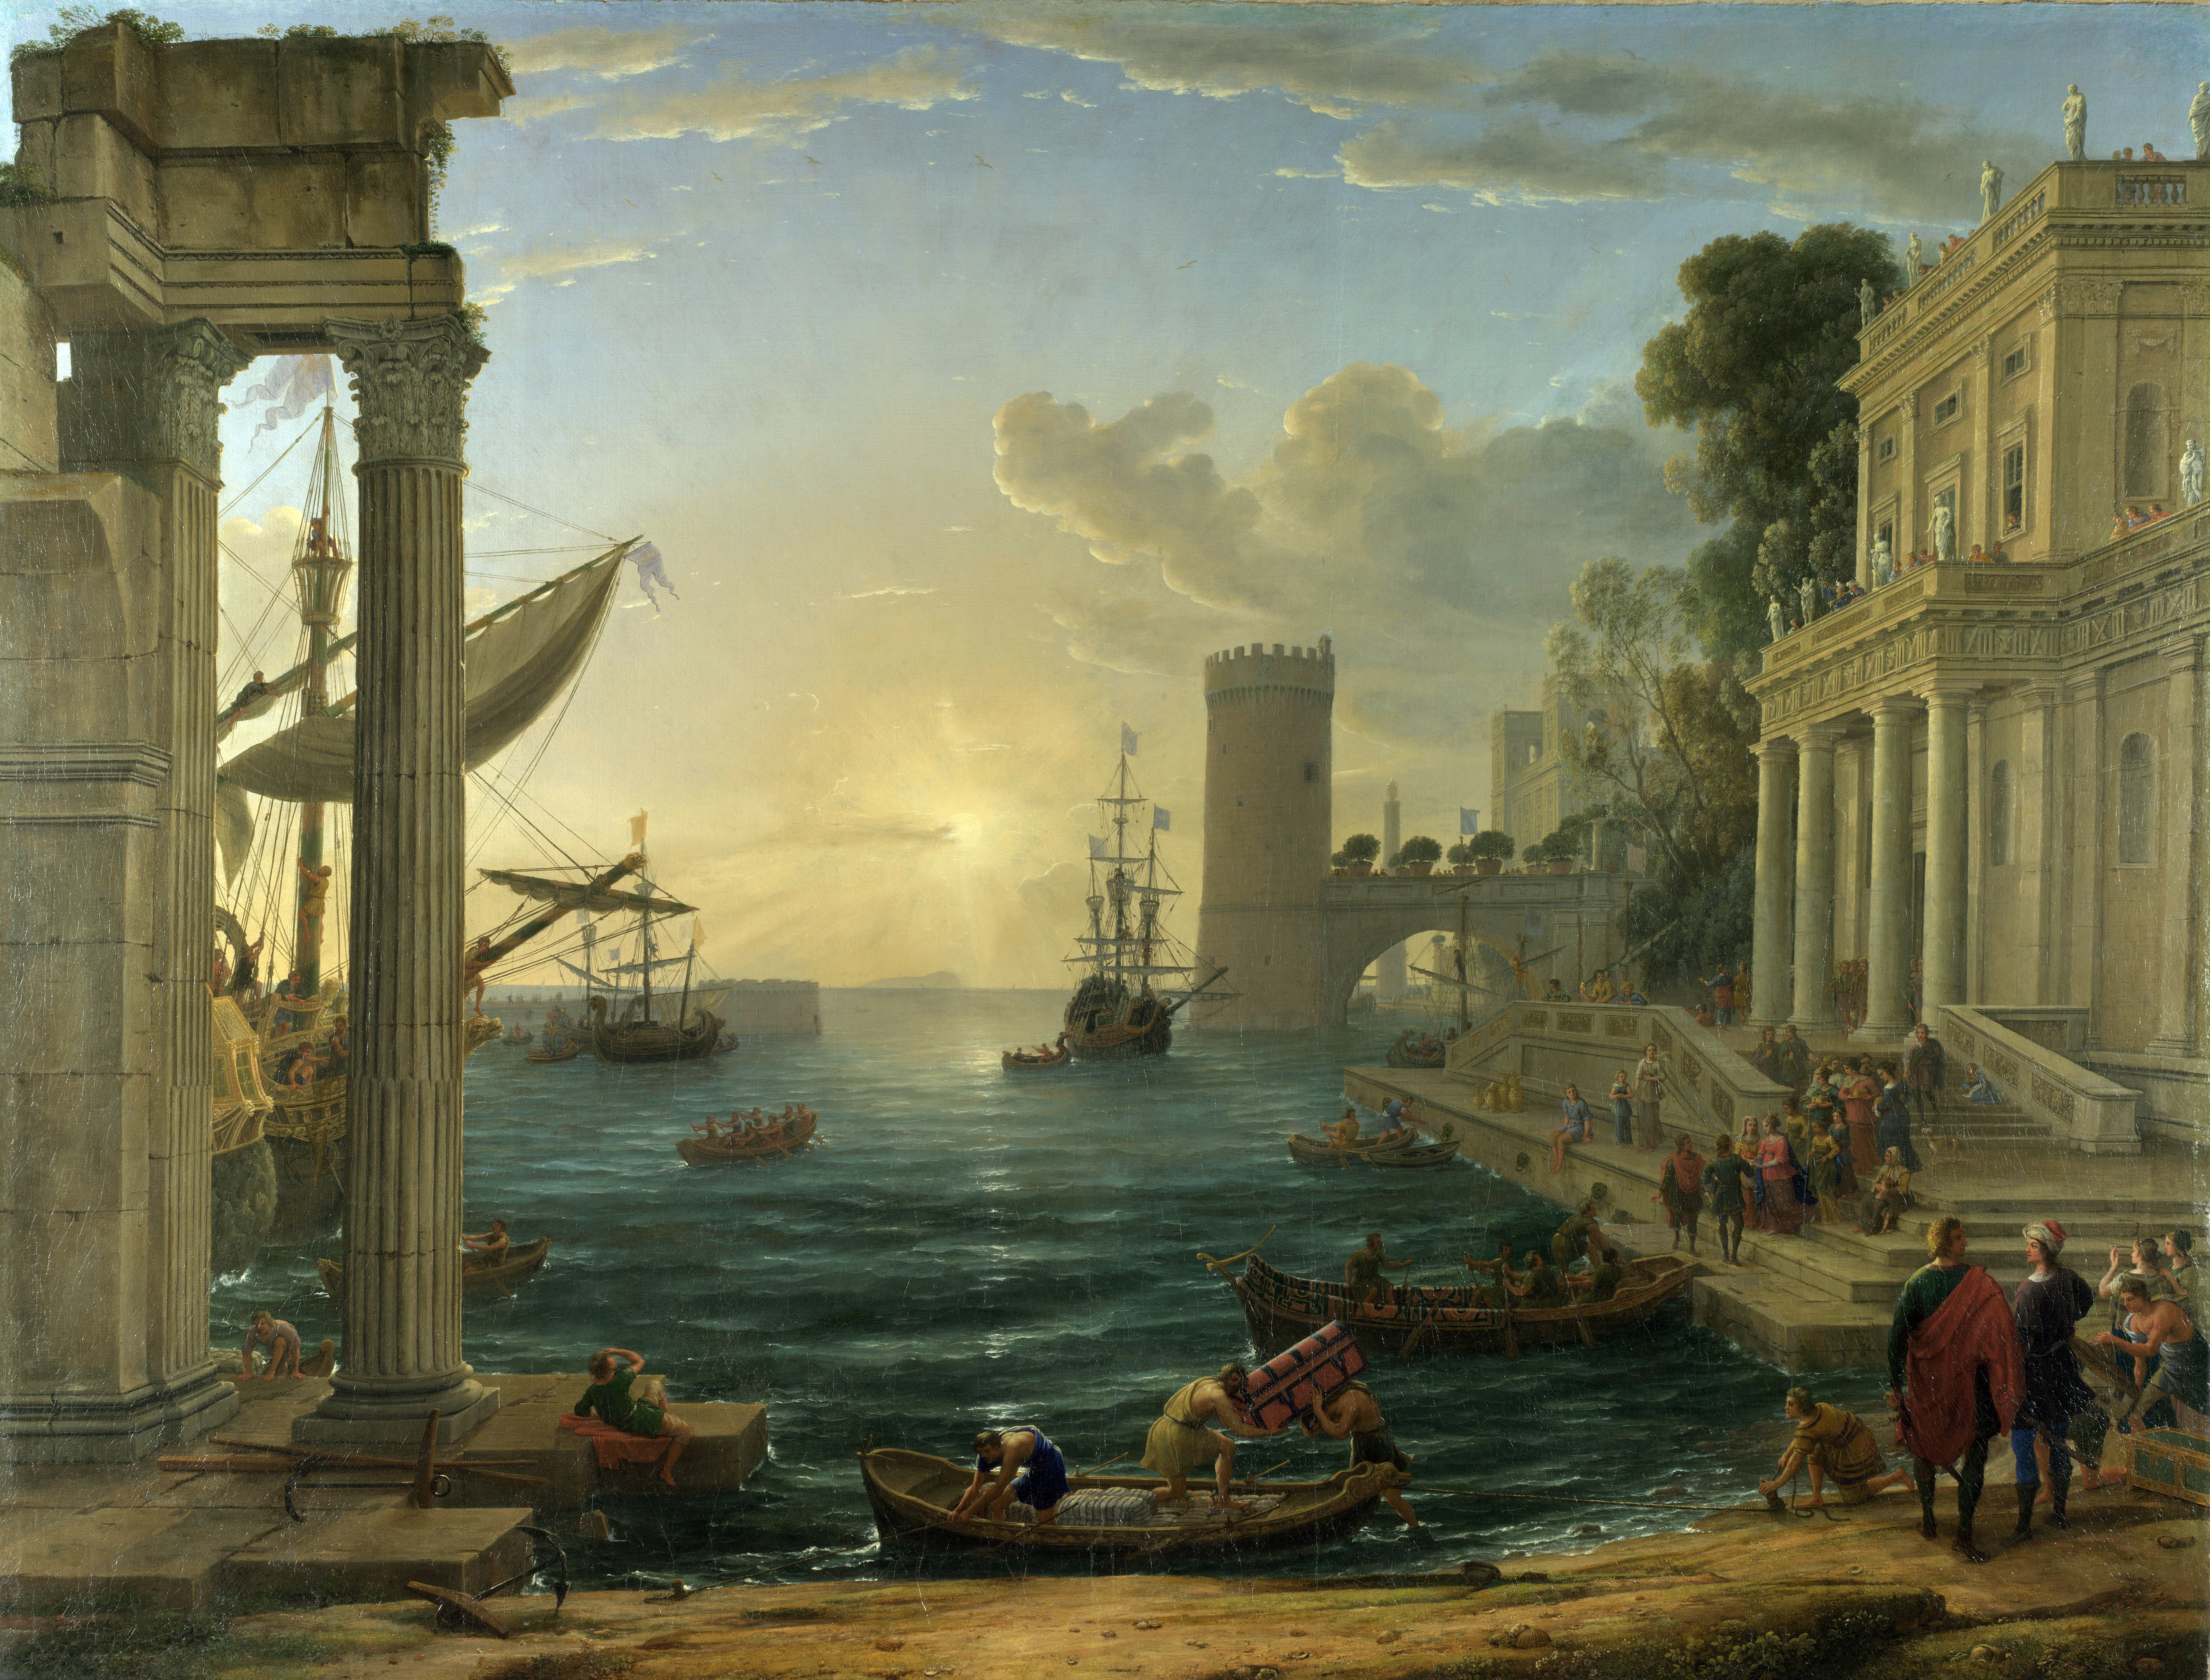 Seaport with the Embarkation of the Queen of Sheba is an oil painting by Claude Lorrain (born Claude Gellée, traditionally known as Claude), in the National Gallery, London, signed and dated 1648. The large oil on canvas painting was commissioned by Frédéric Maurice de La Tour d'Auvergne, Duc de Bouillon, general of the Papal army, together with Claude's Landscape with the Marriage of Isaac and Rebecca. It depicts the departure of the Queen of Sheba to visit King Solomon in Jerusalem, described in the tenth chapter of the First Book of Kings. A more usual subject would be their meeting; this is one of many harbor scenes painted by Claude. The Queen is departing from a city with classical buildings, with the early morning sun lighting the sea, as vessels are loaded.